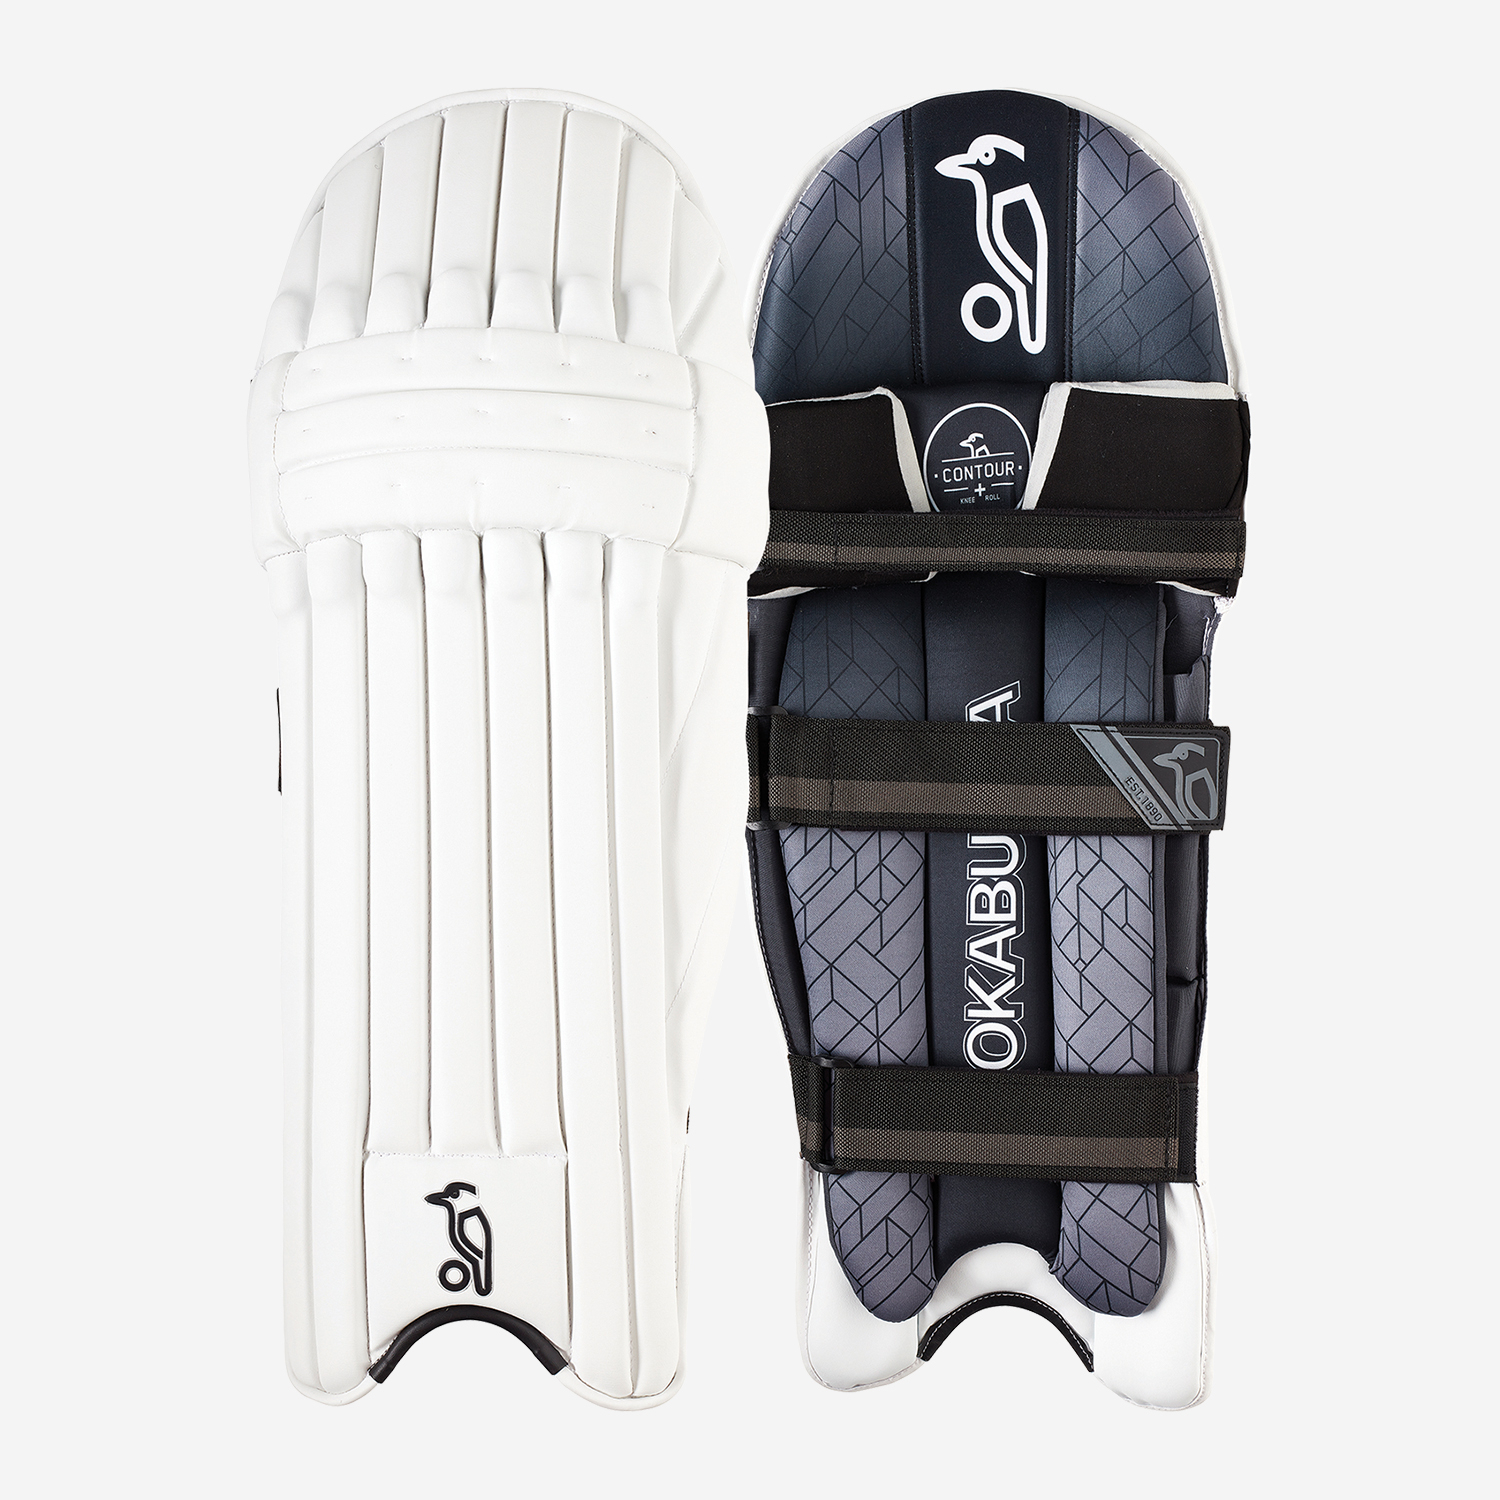 Shadow Pro Players Batting Pads